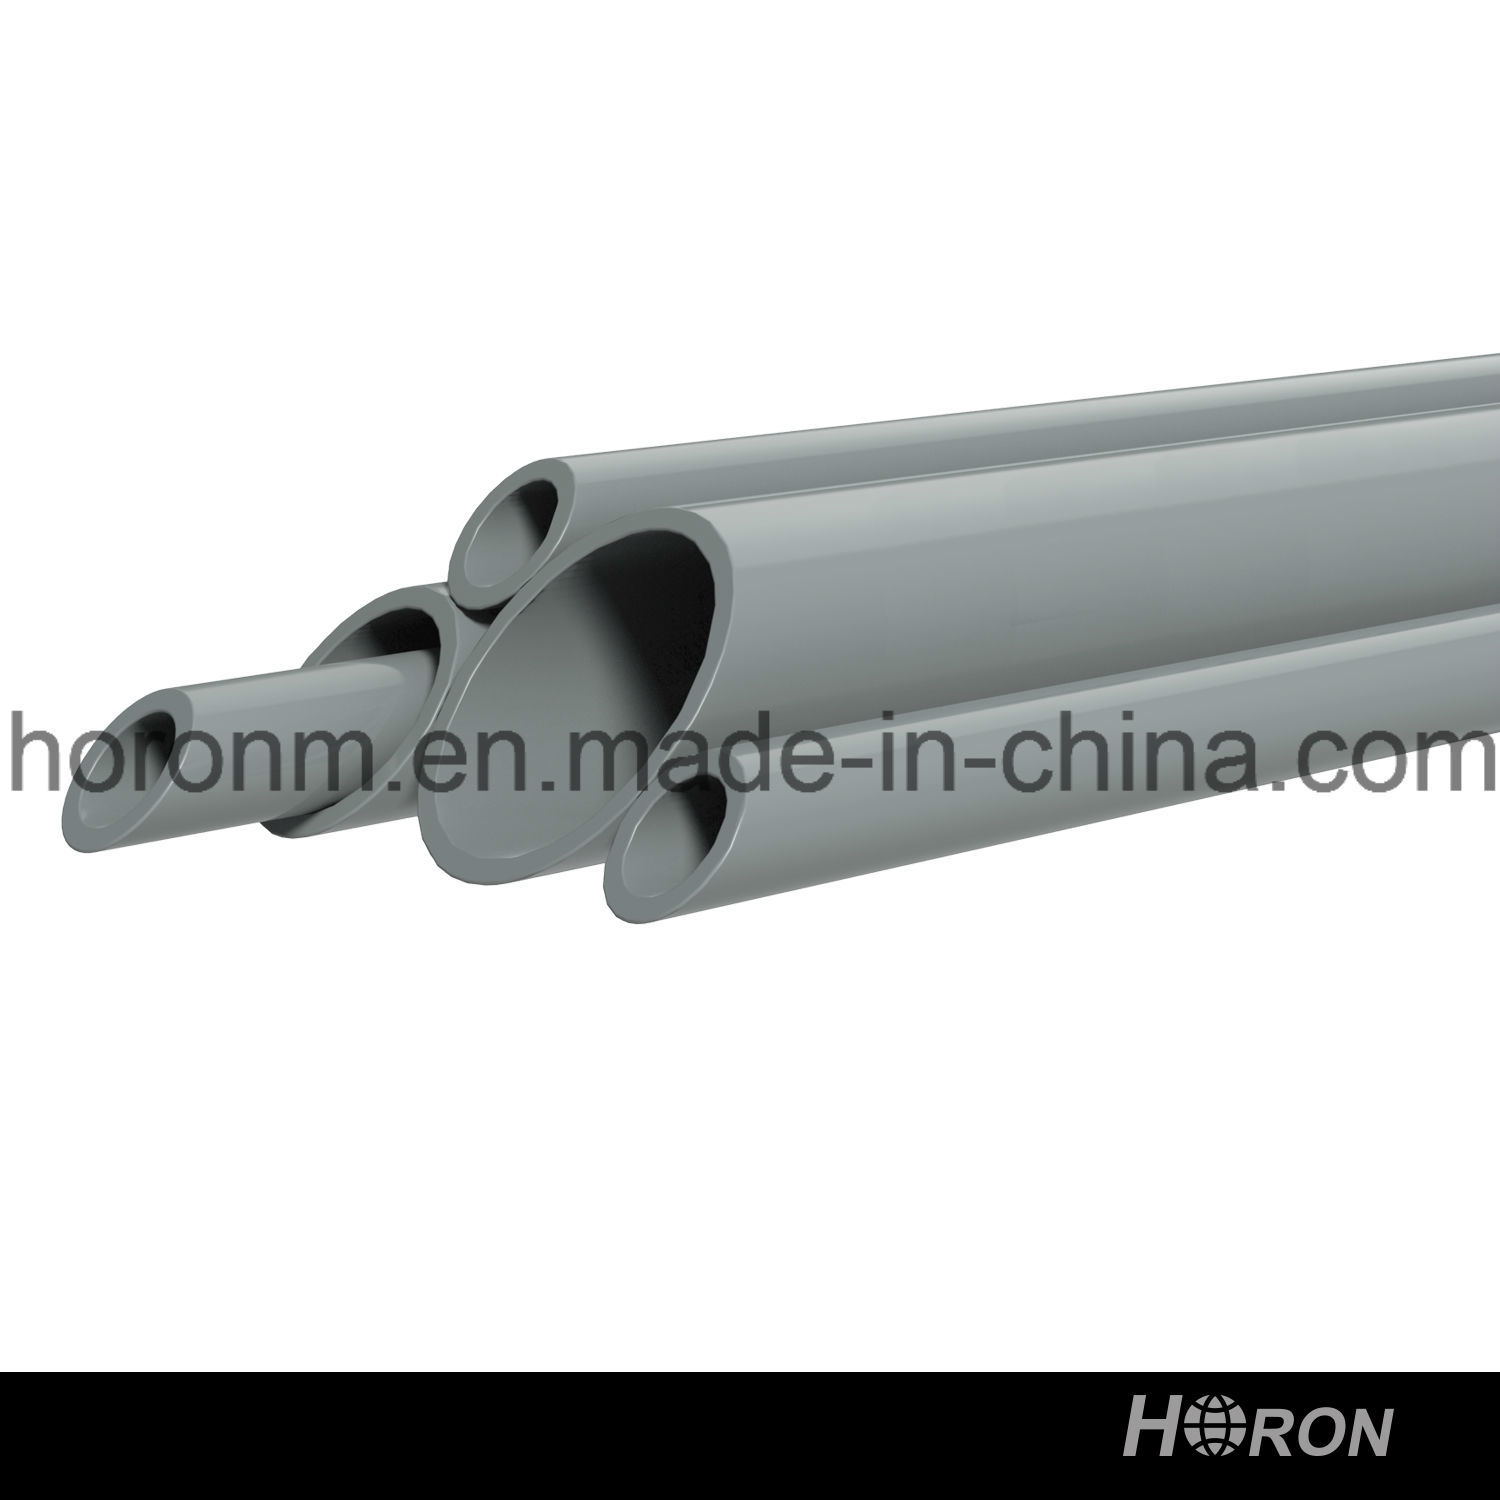 Water Pipe-PVC Pipe-CPVC Water Pipe-CPVC Tube-CPVC ASTM Sch40 Water Pipe-Pipe